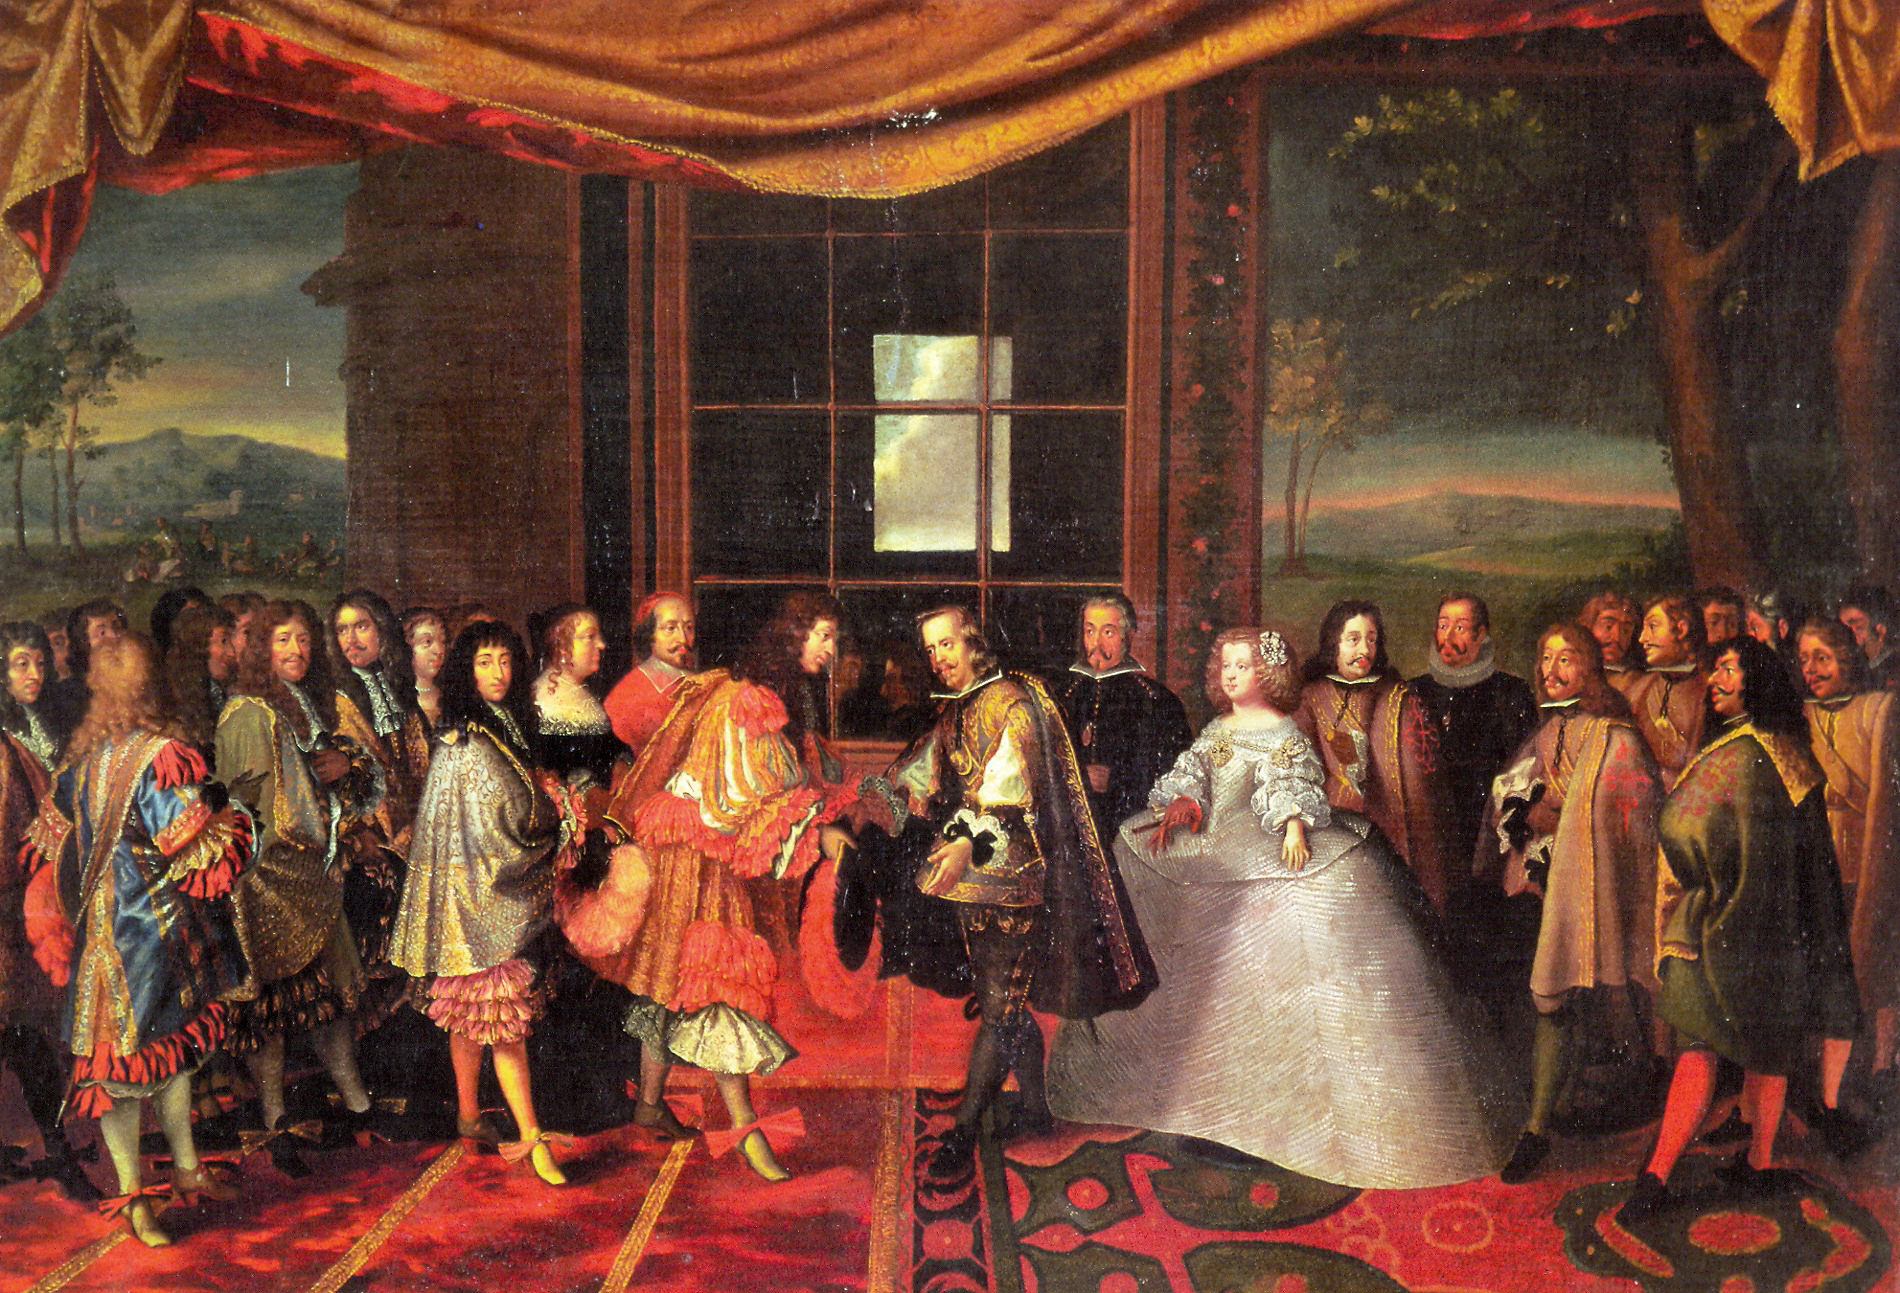 Meeting of Philip IV of Spain and Louis XIV of France on 7 July 1660 at Pheasant Island.